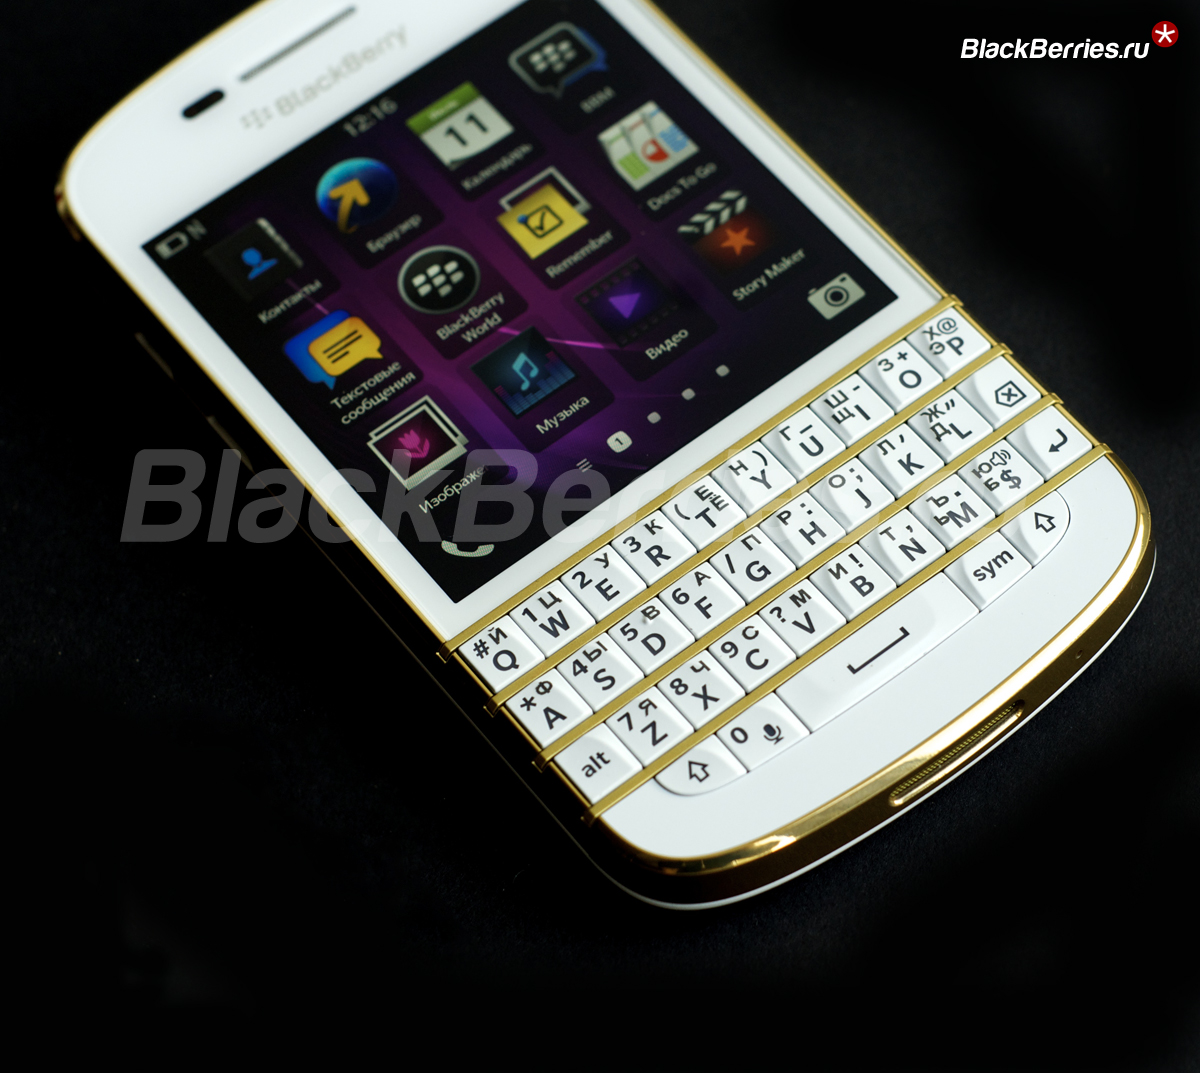 BlackBerry-Q10-Special-Edition-100